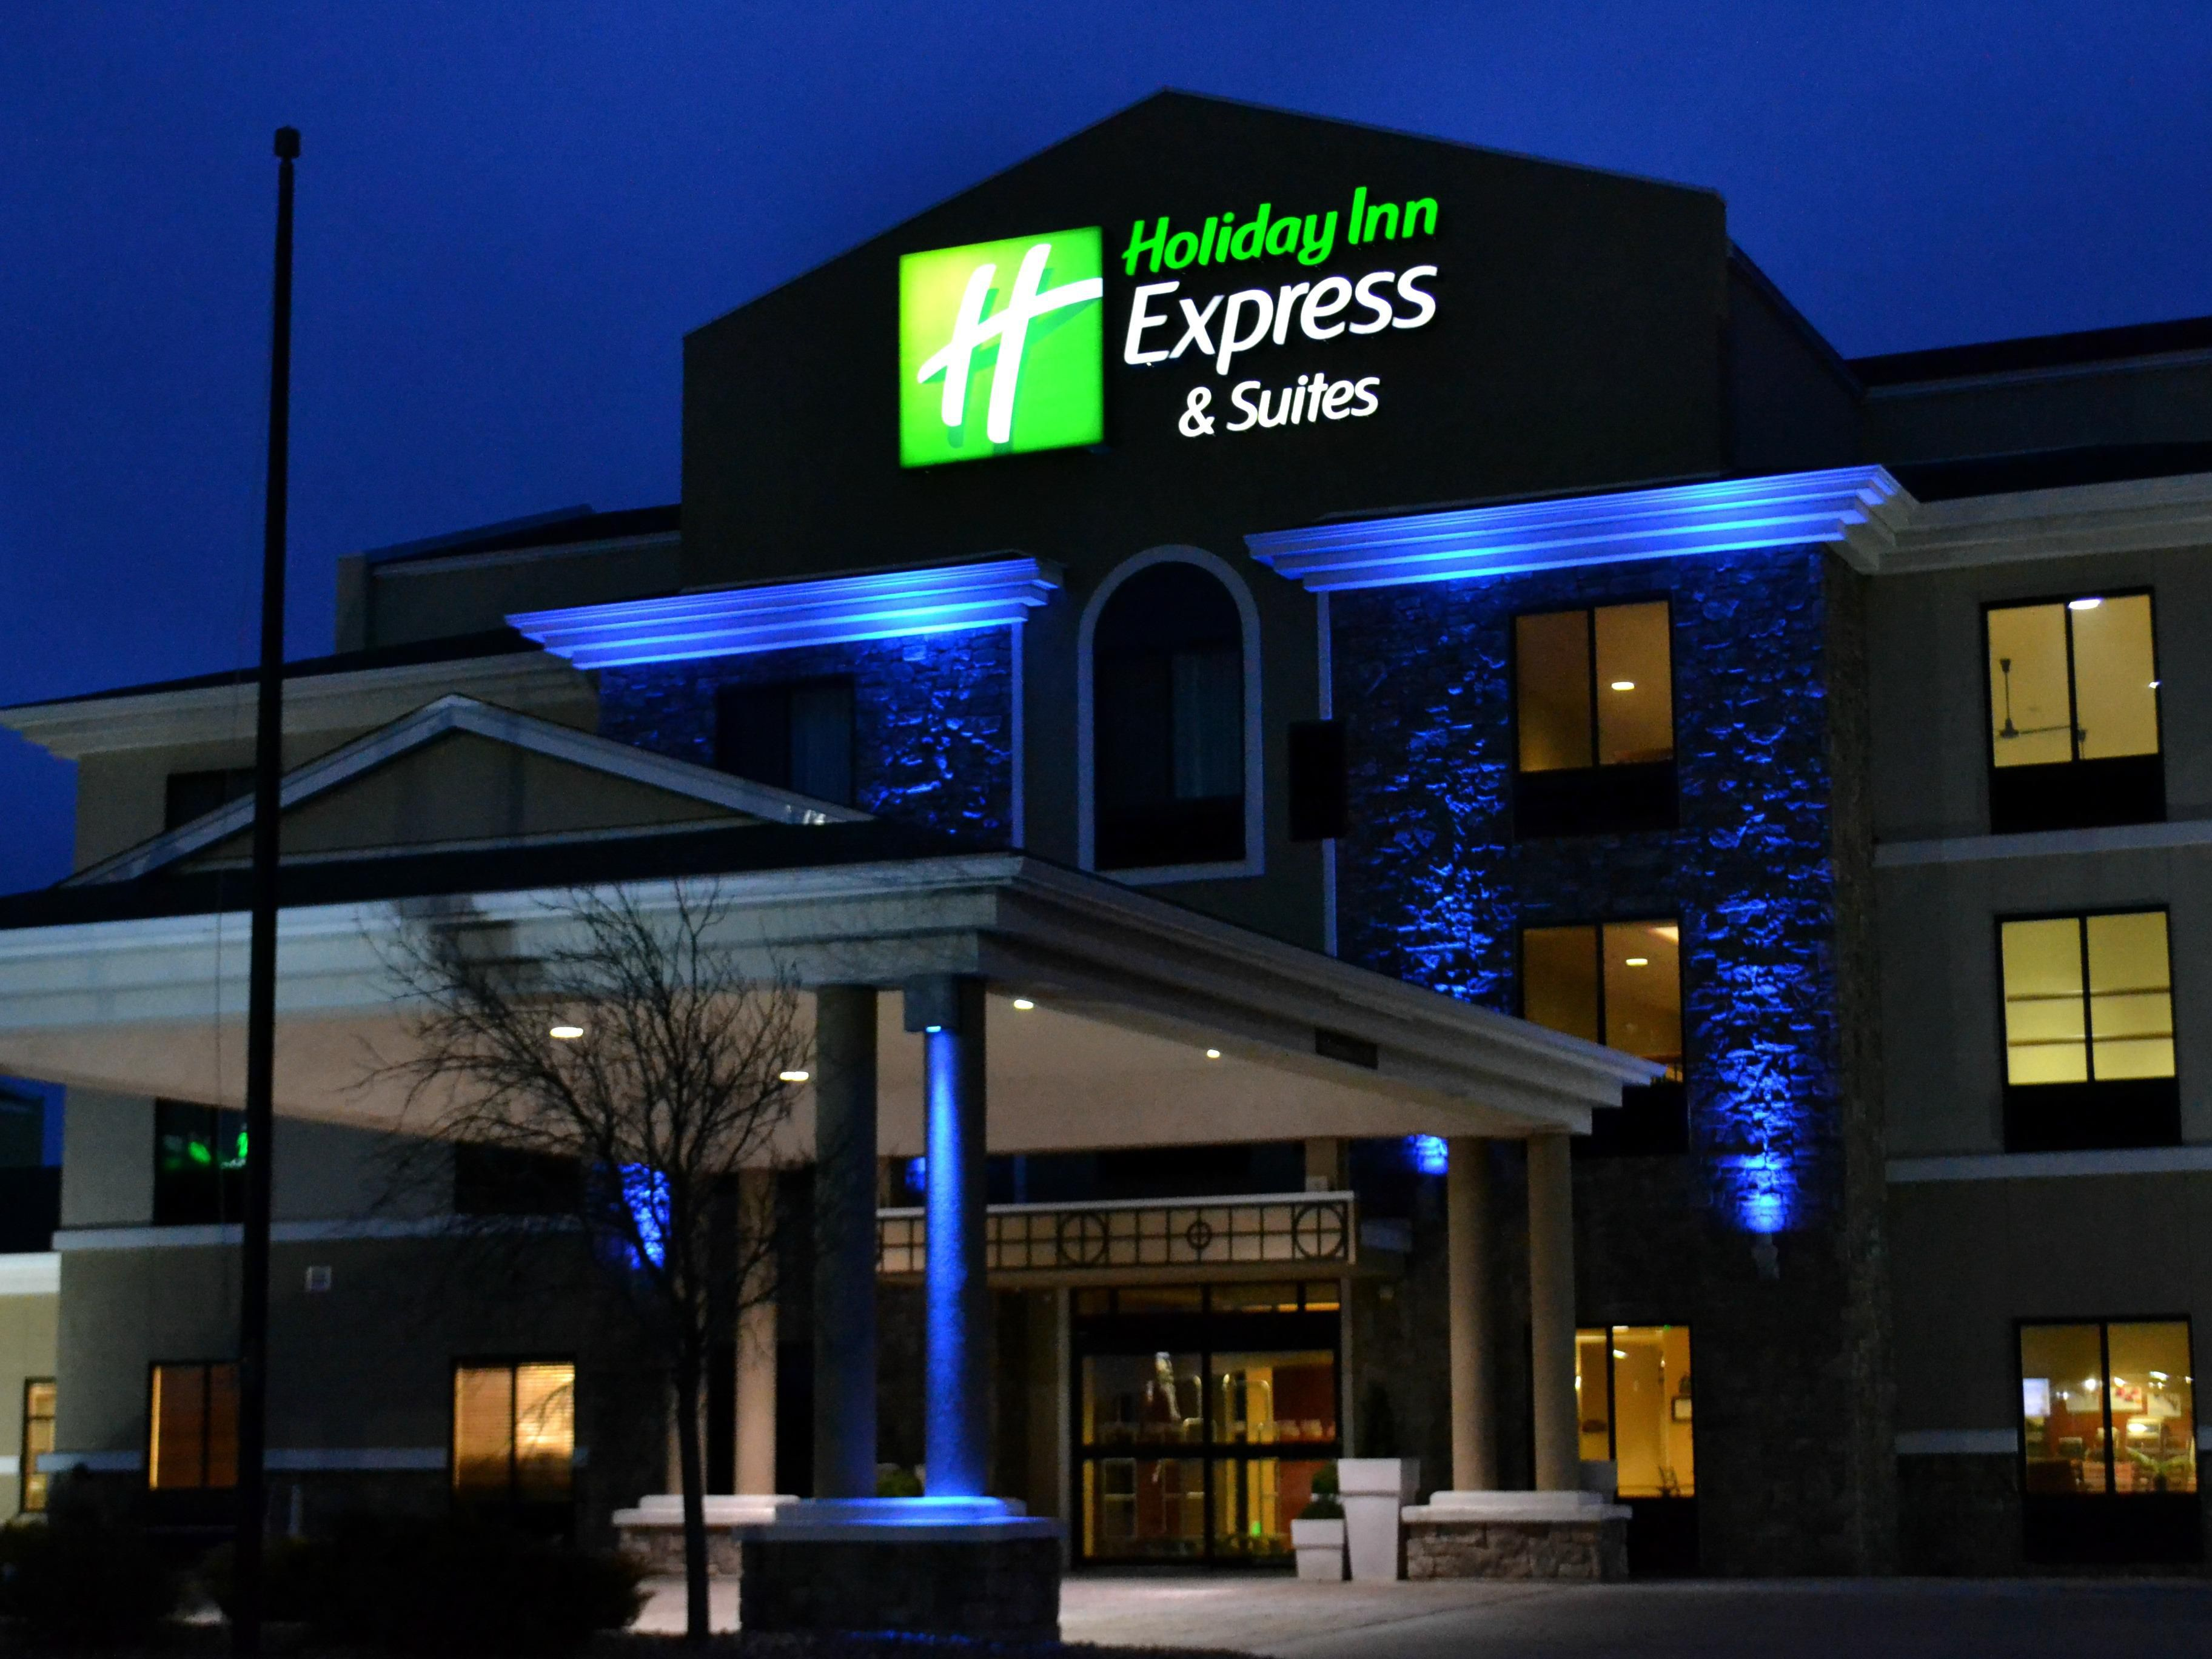 Night Life at the Beautiful Holiday Inn Express